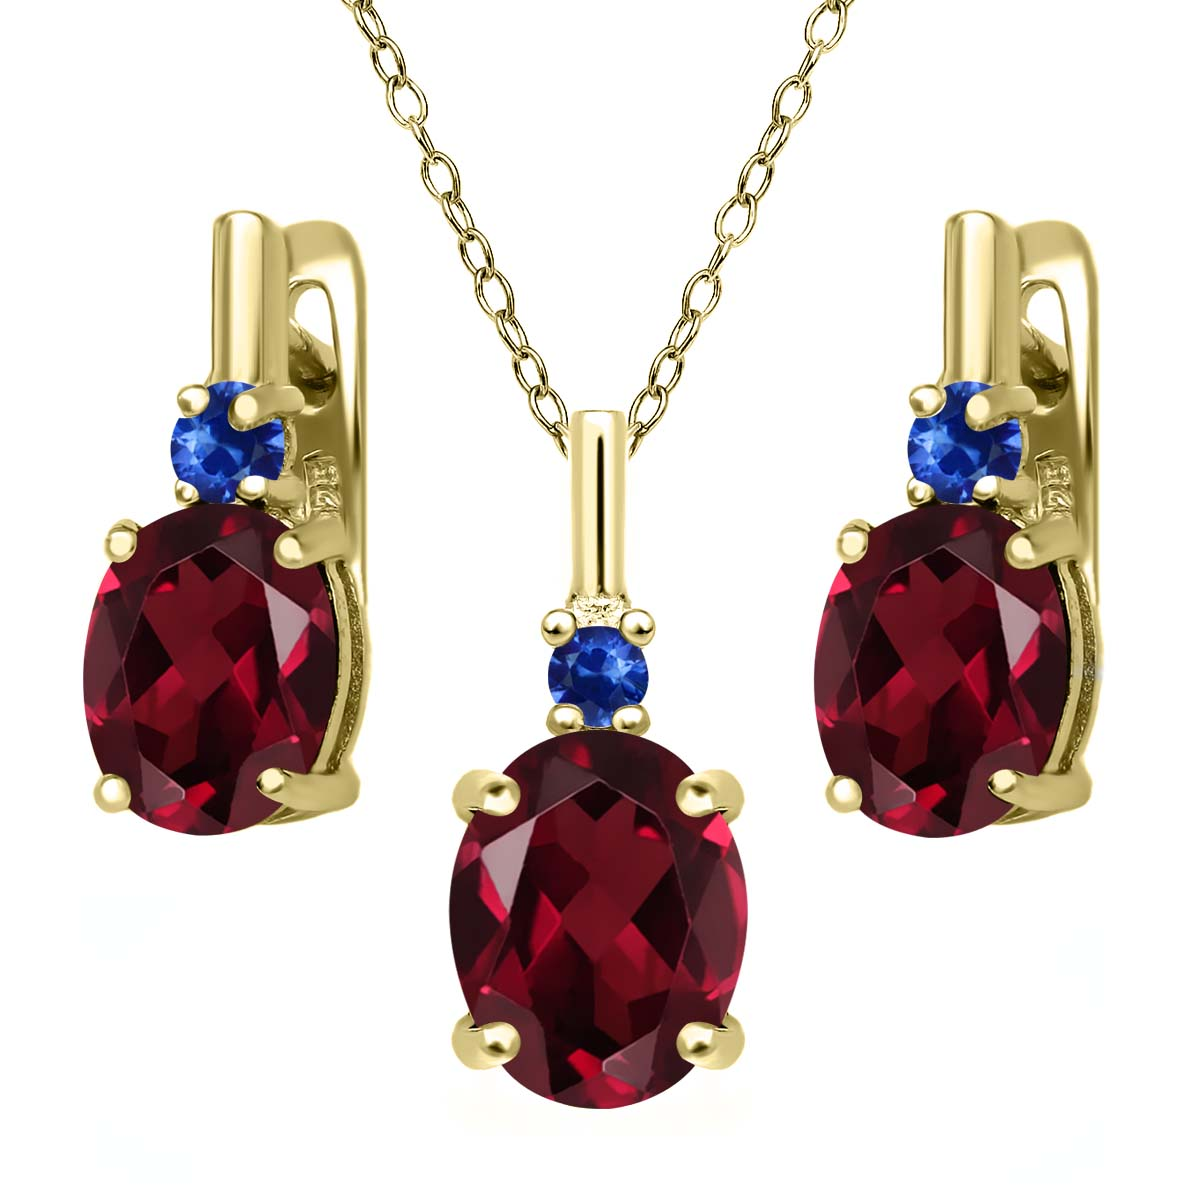 6.68 Ct Red Rhodolite Garnet Blue Sapphire 18K Yellow Gold Plated Silver Pendant Earrings Set by